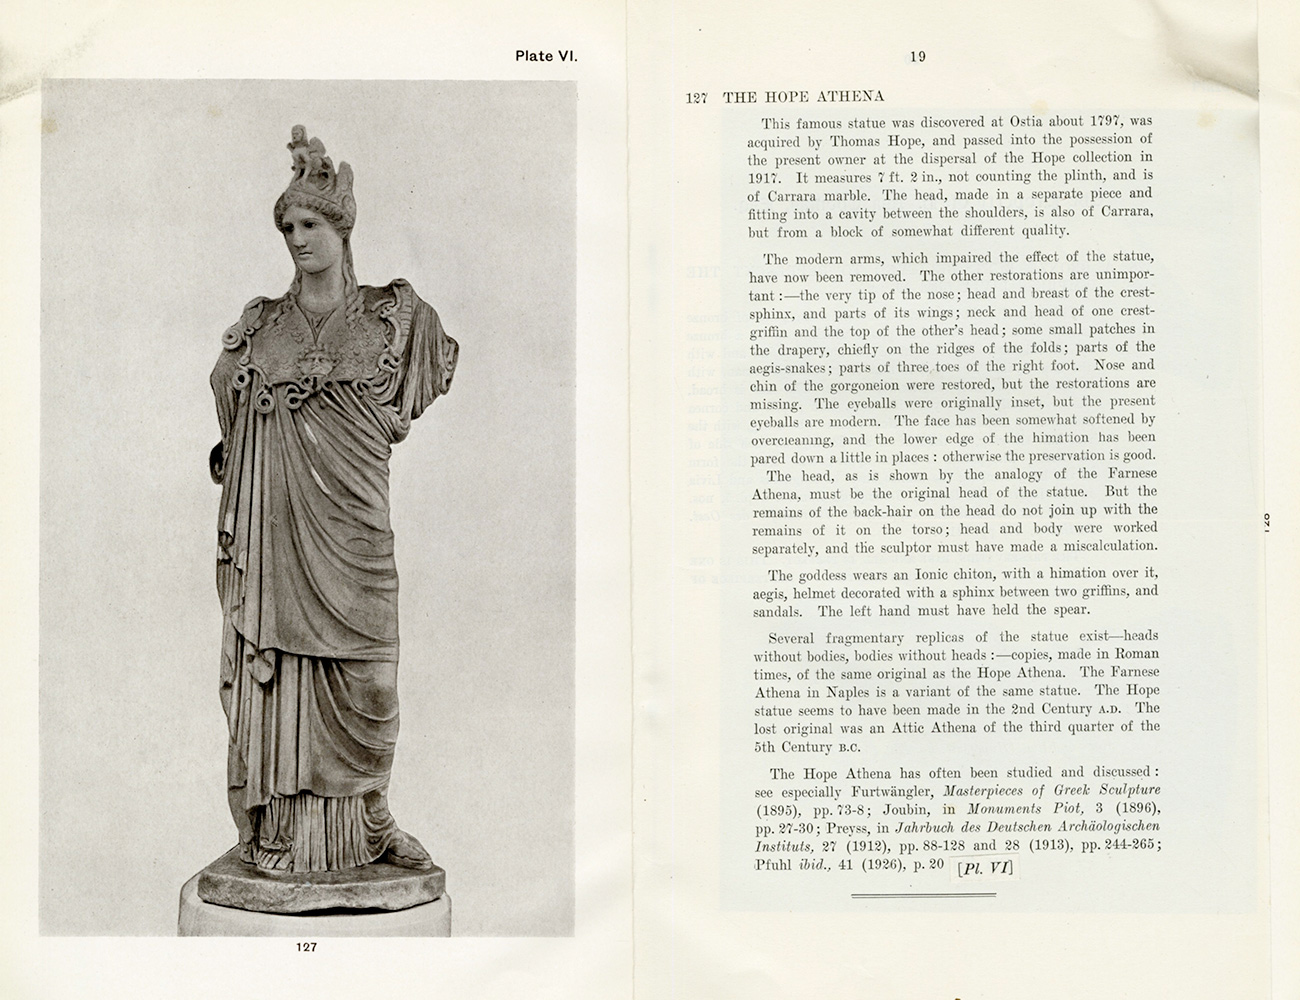 Scan of a 1933 auction catalog showing a marble sculpture of Athena